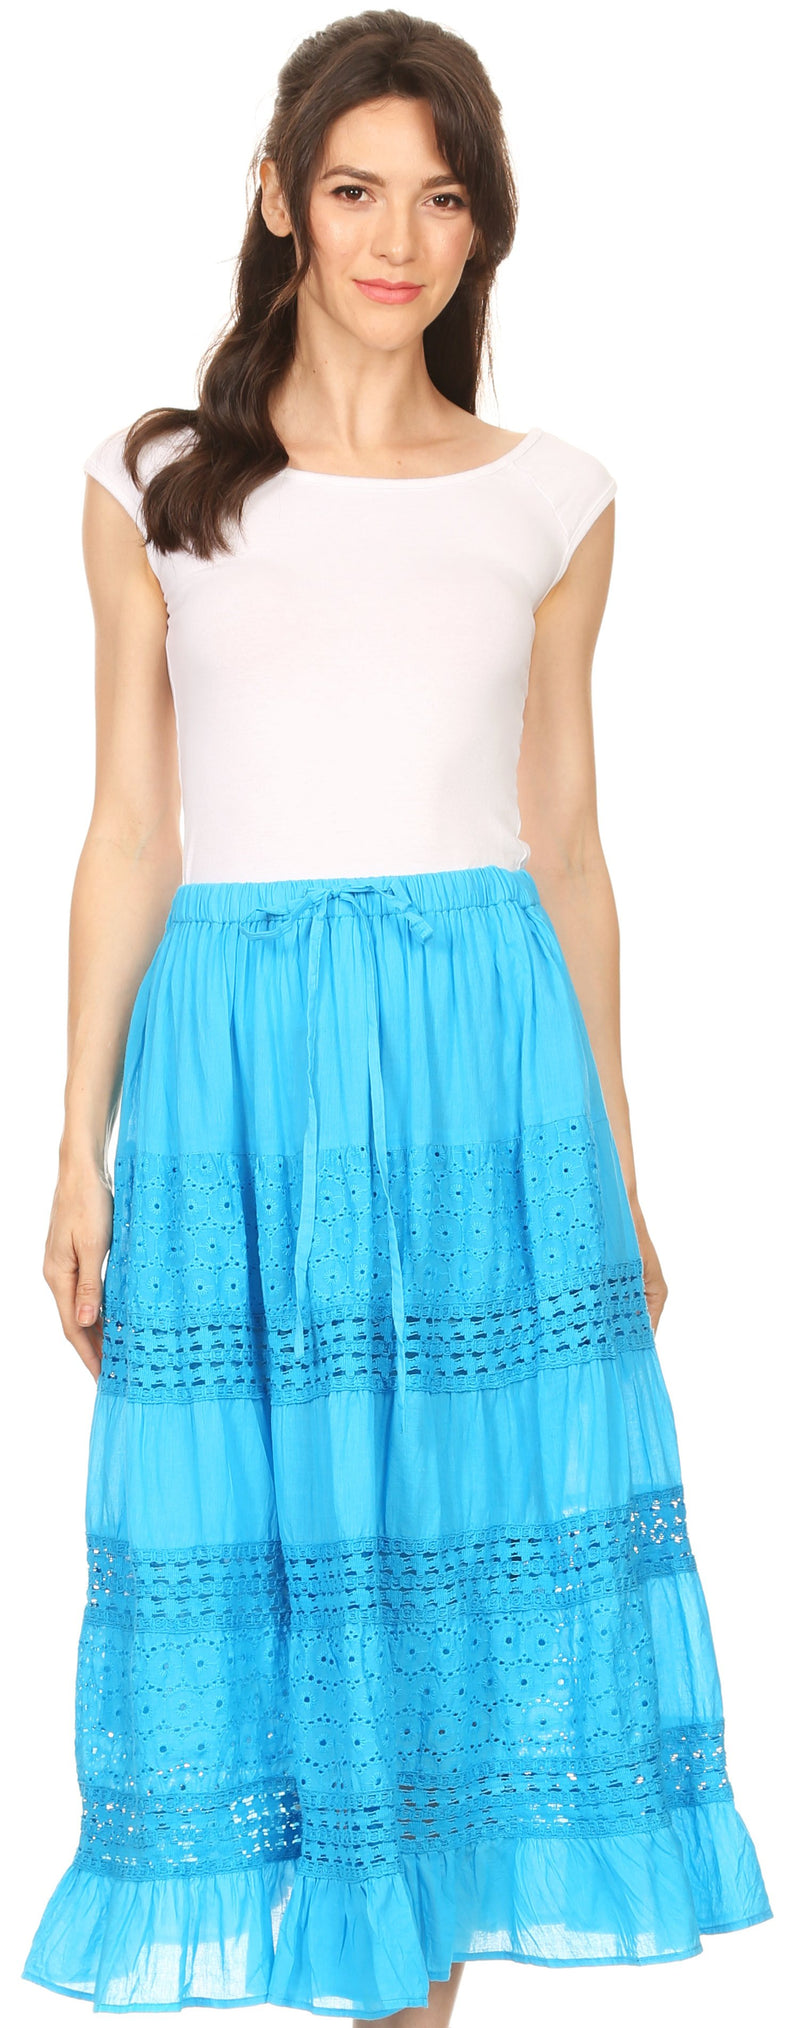 Sakkas Geneva Cotton Eyelet Skirt with Elastic Waistband